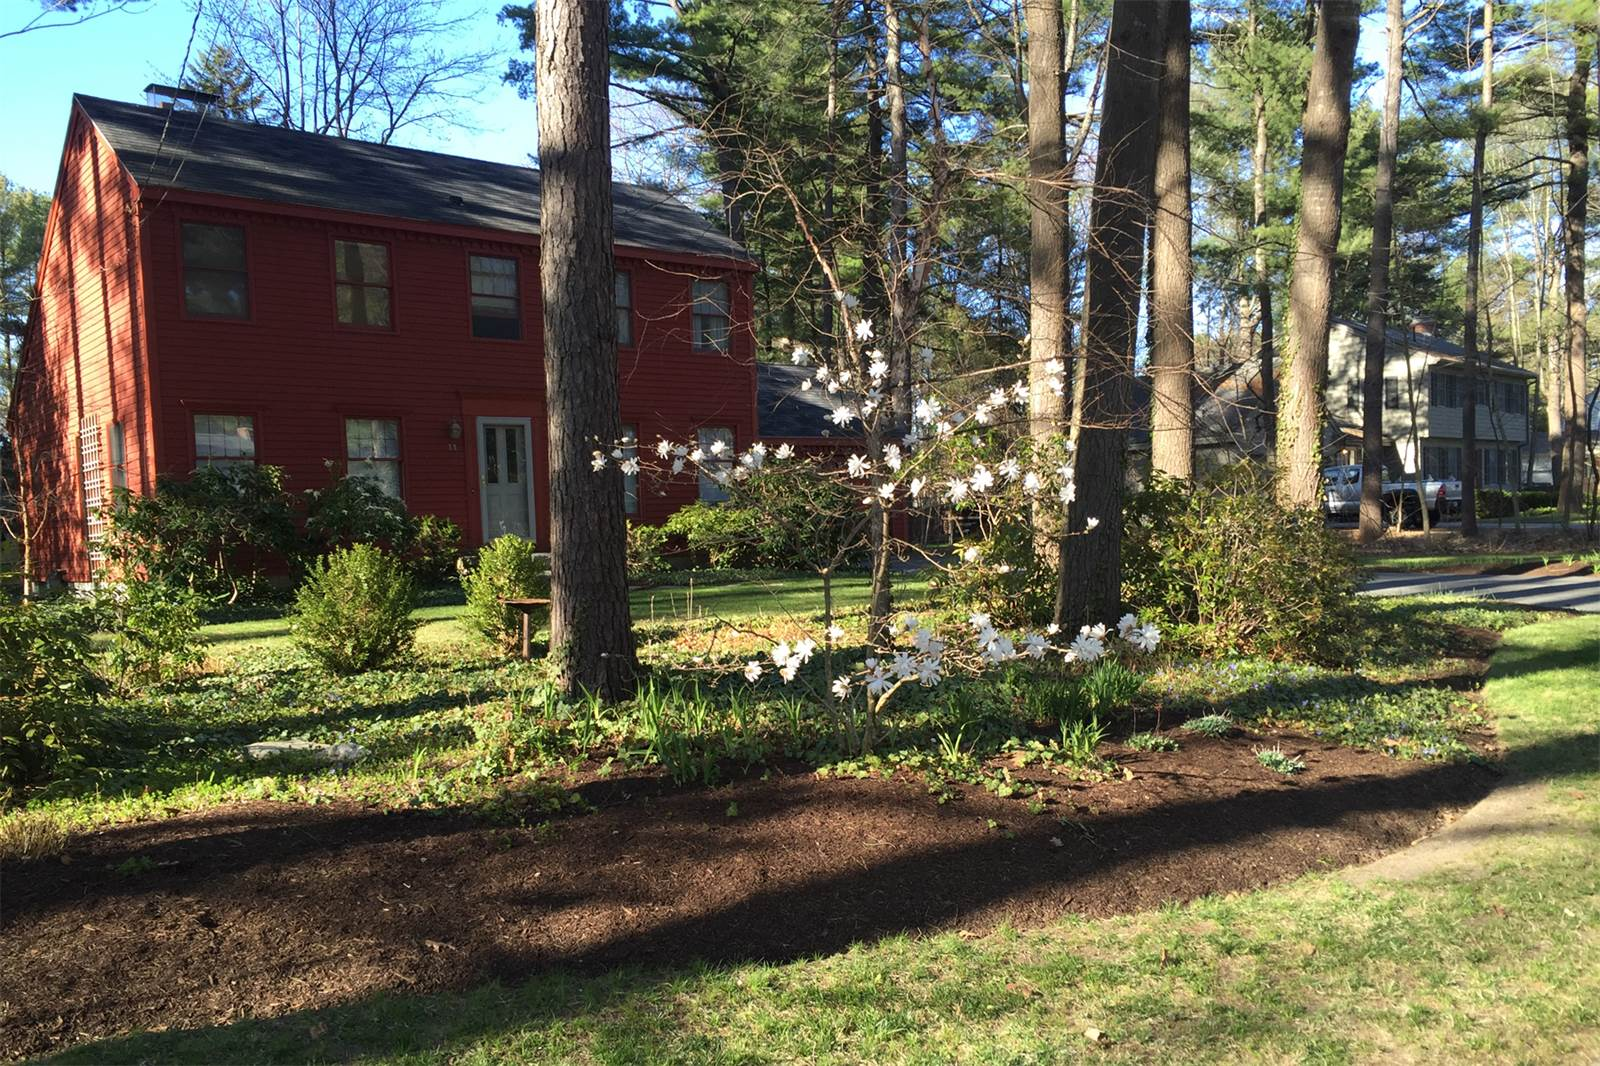 home for sale 11 colonial drive brunswick maine 04011 by legacy properties sotheby 39 s